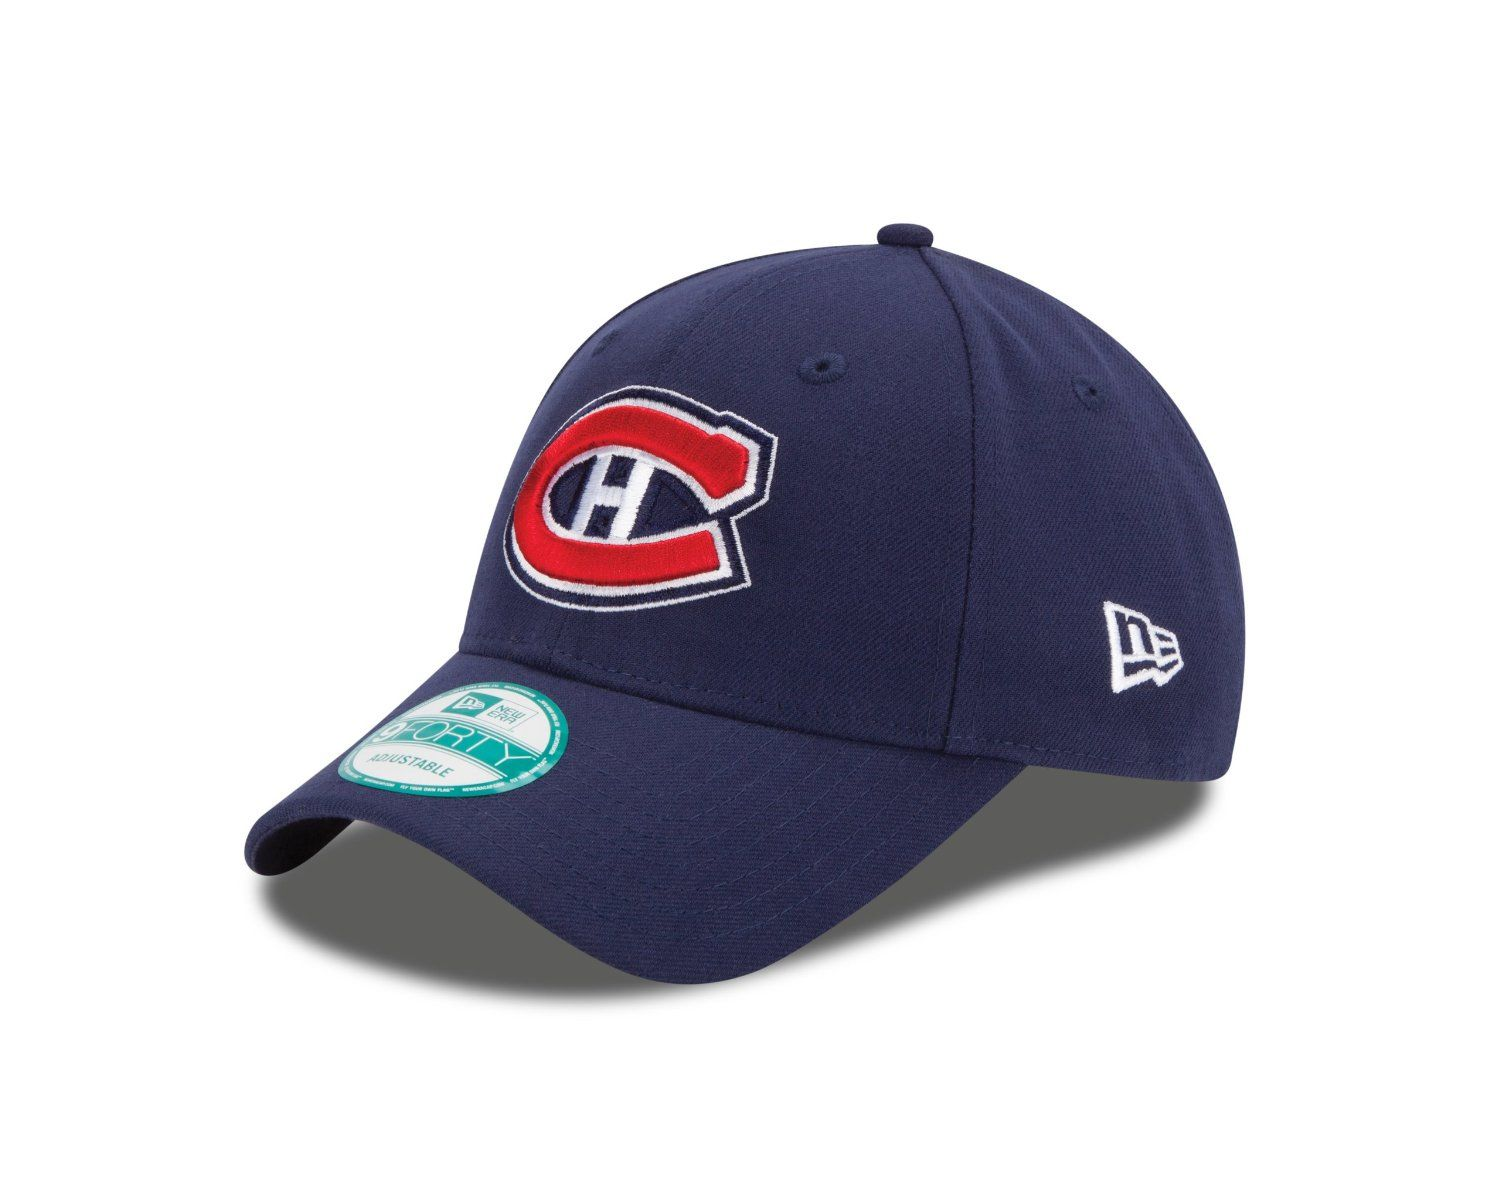 New Era NHL Gorra ajustable 940  Amazon.com.mx  Deportes y Aire Libre 60655c759df